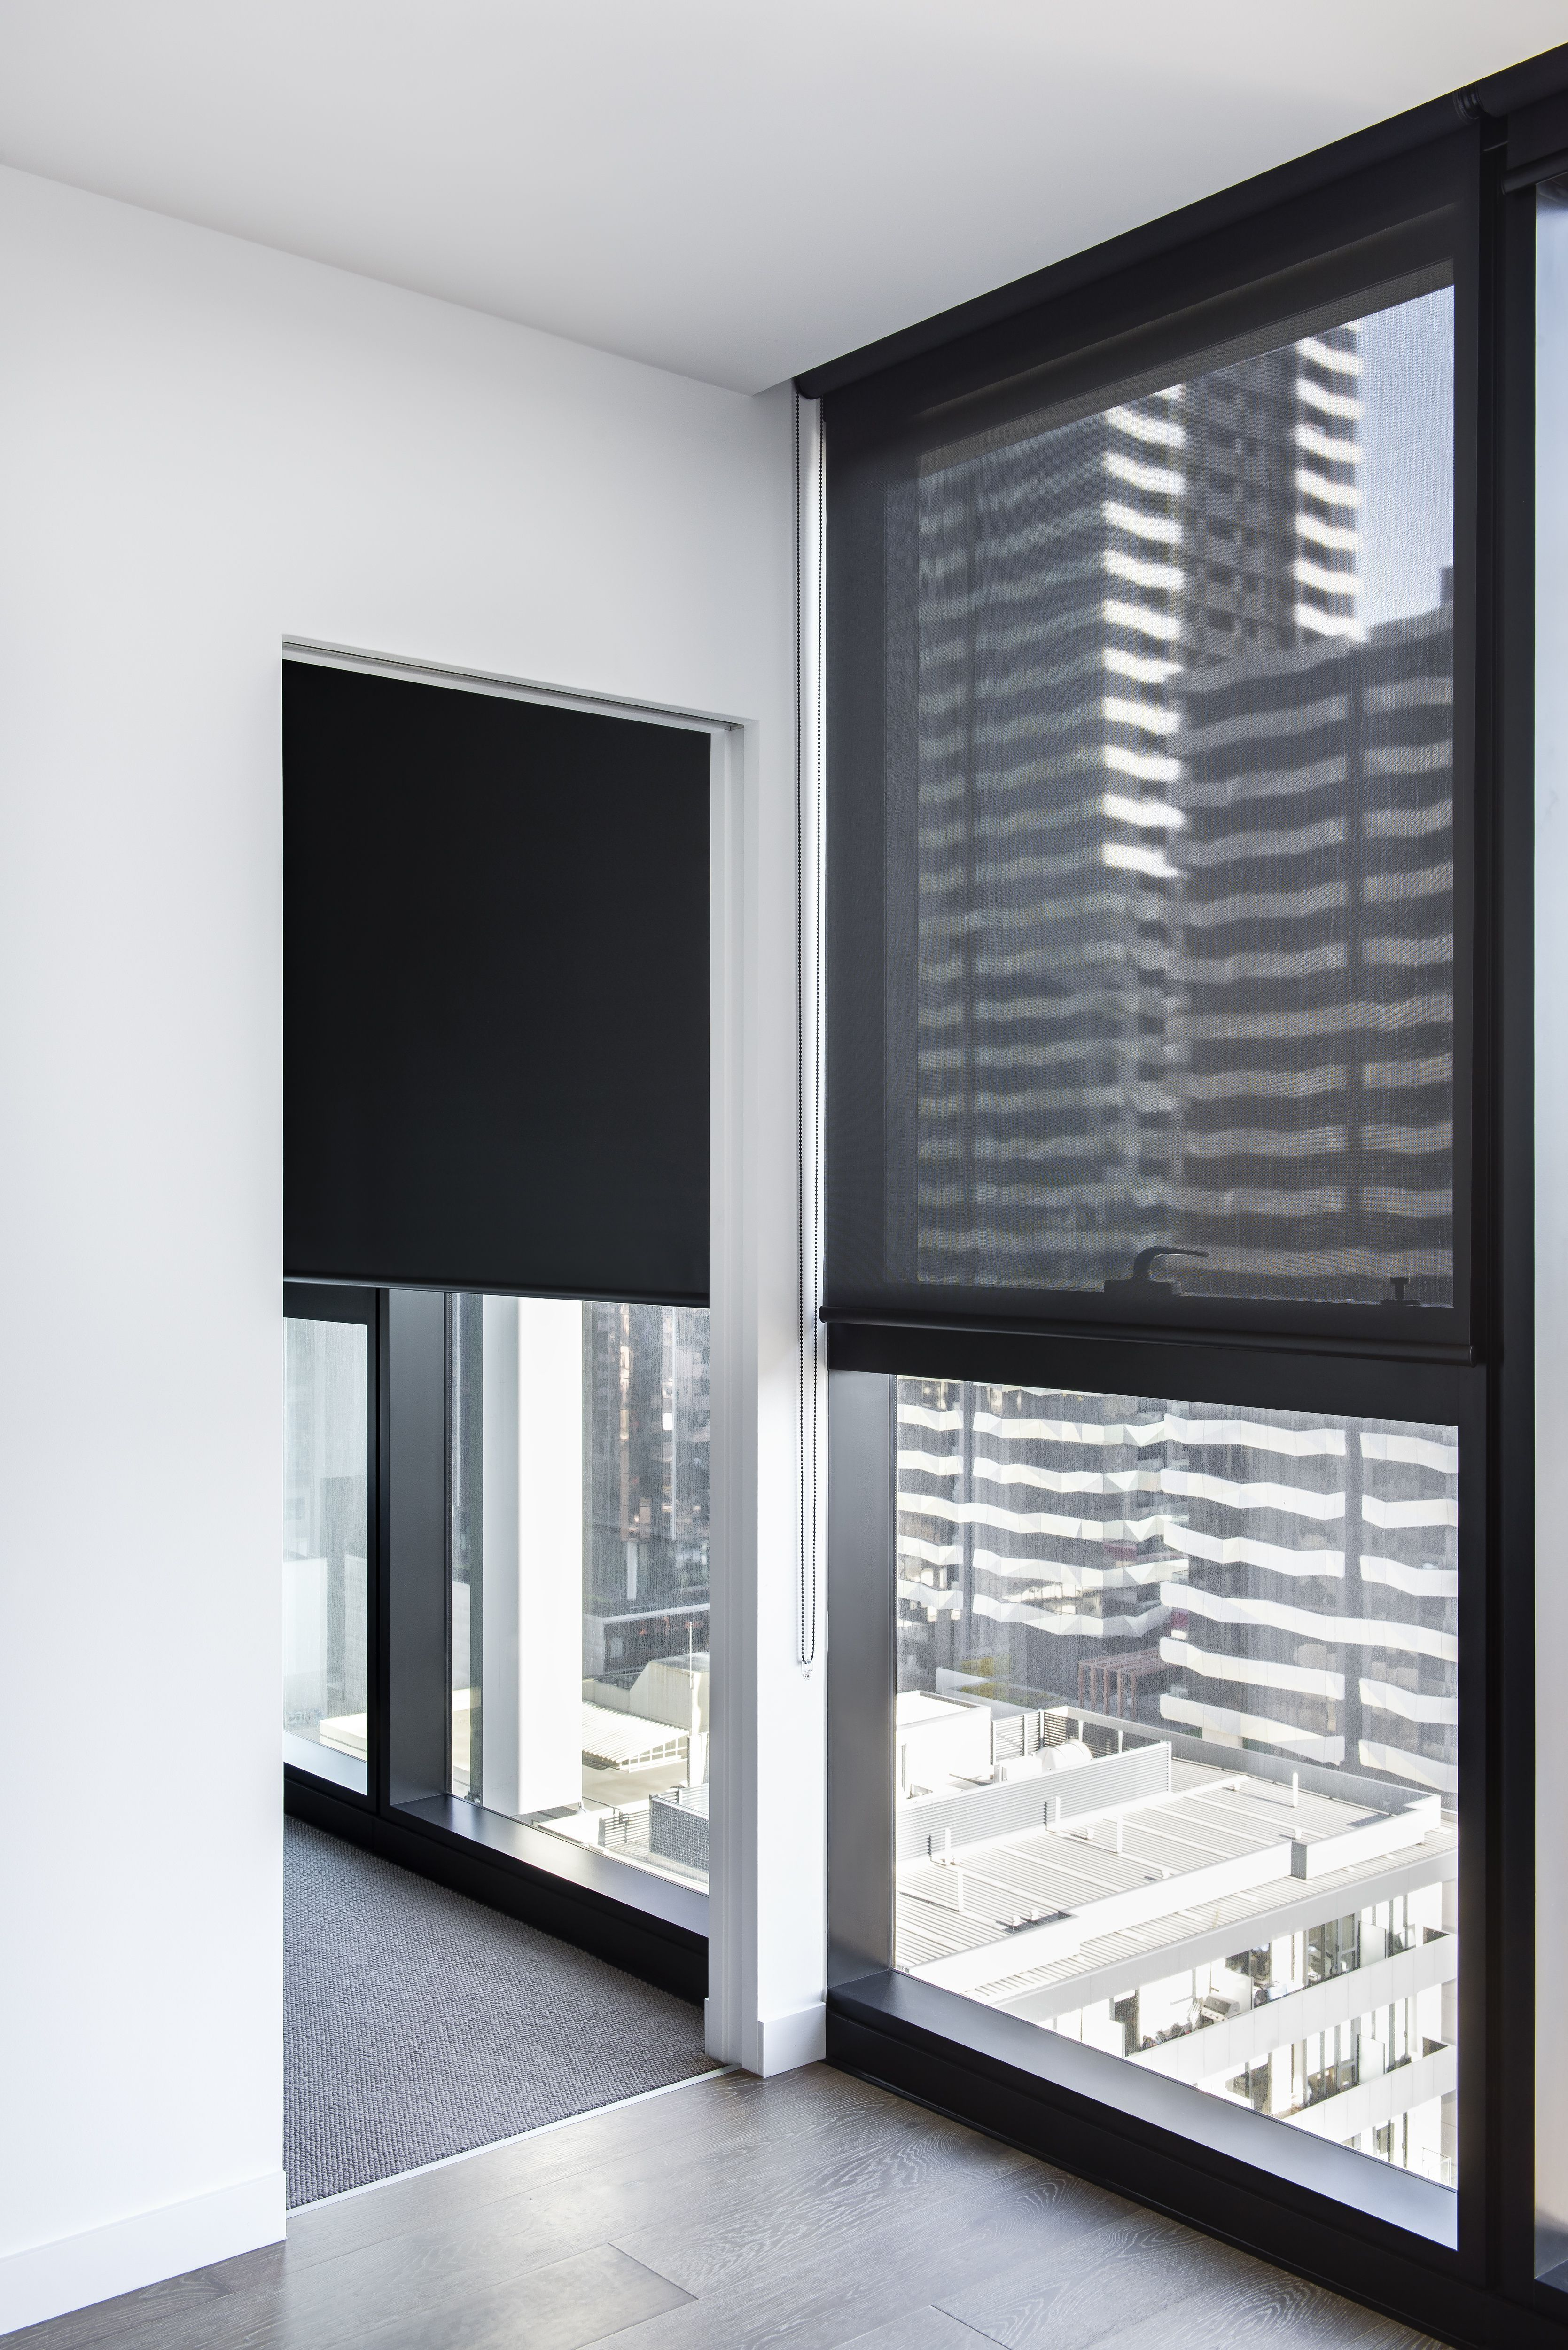 Single roller blinds in solitaire u onyx blockout fabric left and